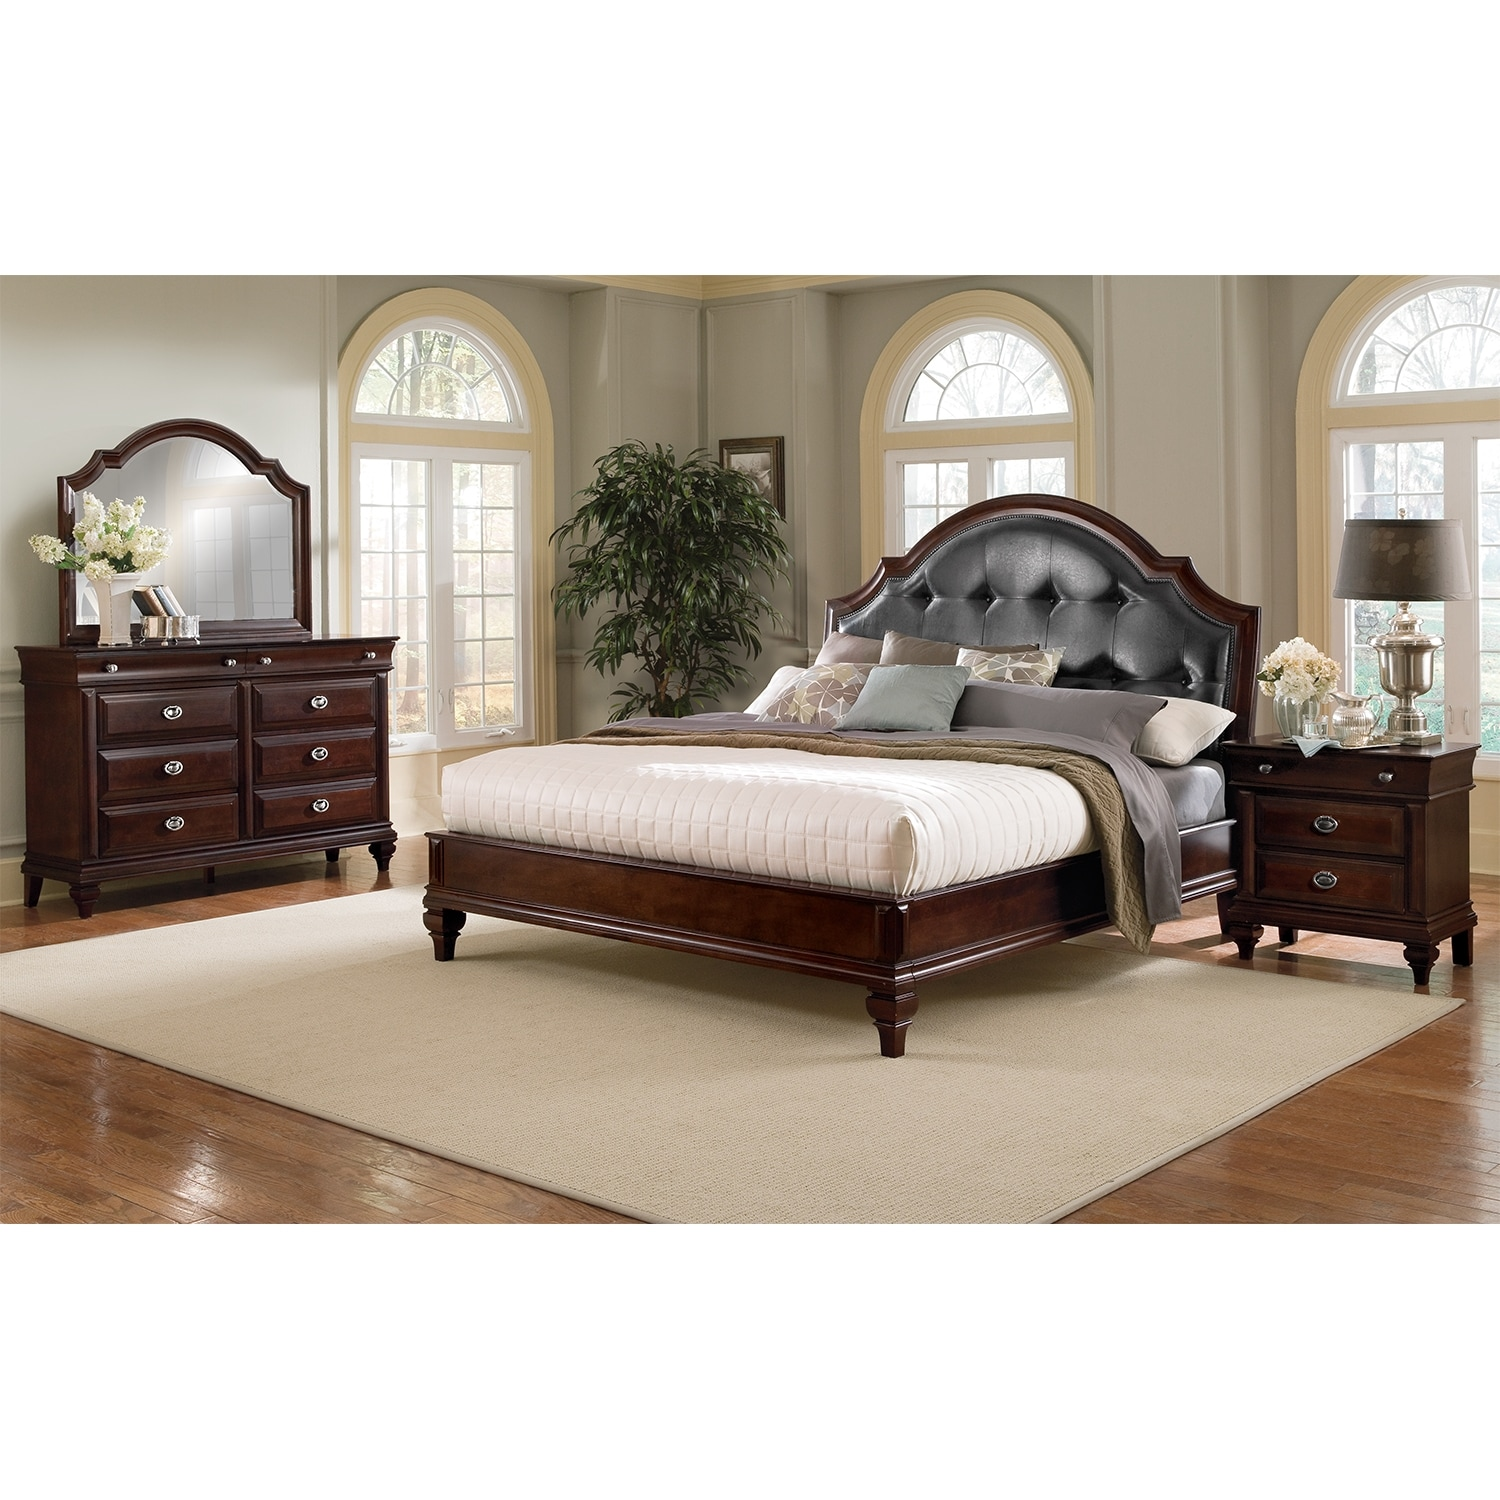 Manhattan 6 piece king bedroom set cherry value city for King bedroom furniture